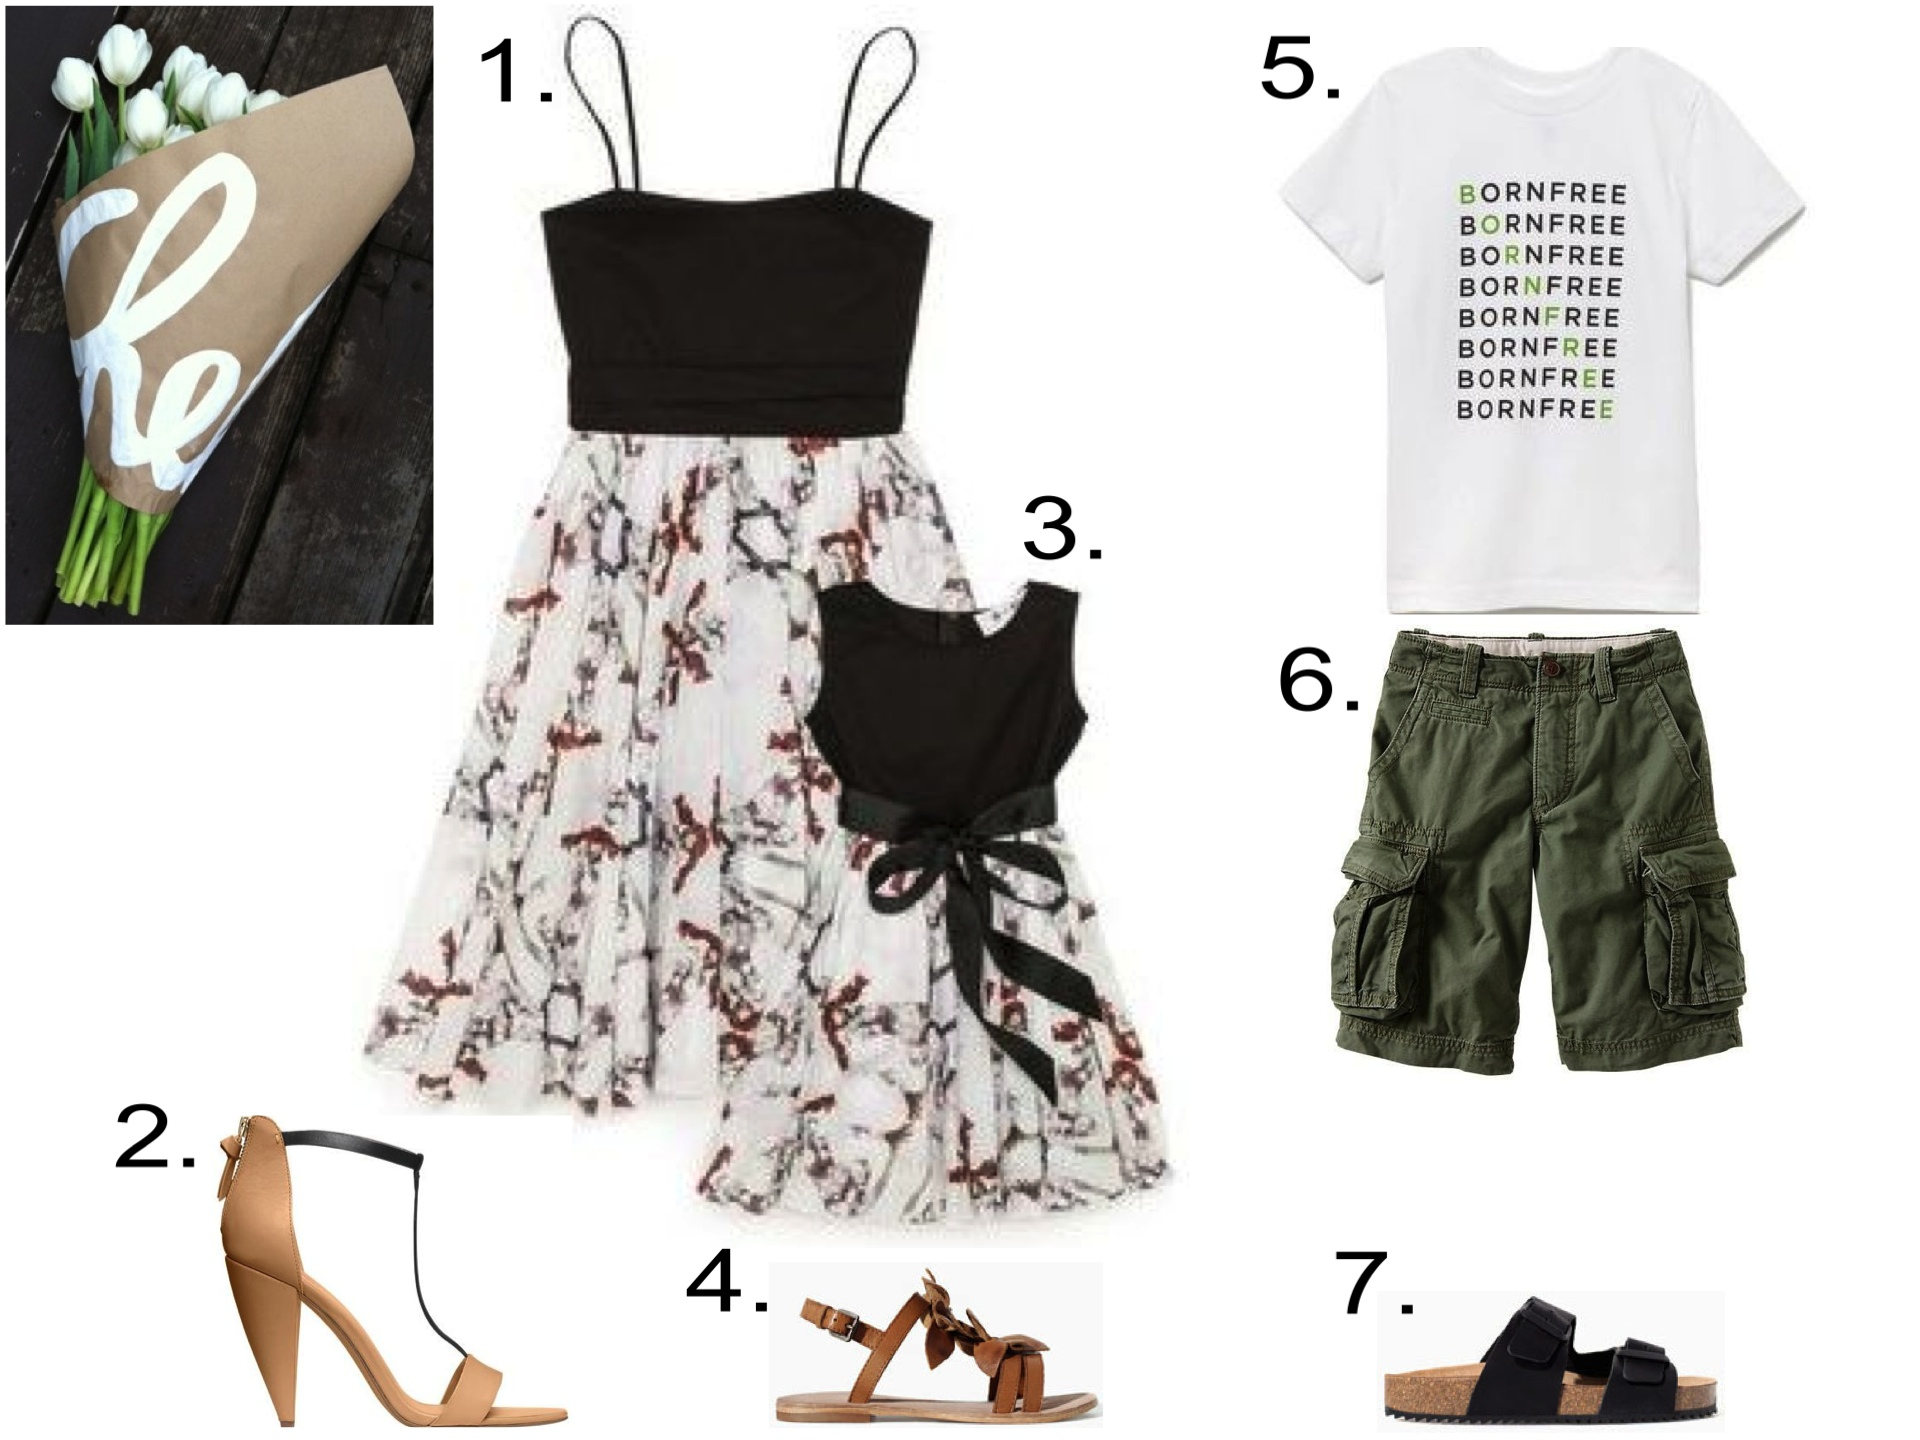 Shopbop + Born Free...  1. Born Free Marchesa Party Dress | 2.  Kate Spade Saturday TWO-TONE T-STRAP SANDALS  |3. Born Free Marchesa Child's Party Dress  |4.  Zara LEATHER SANDAL WITH FLOWERS |5. Born Free Born Free Child's Tee  |6.  GAP Cargo shorts |7.  Zara SANDAL WITH BUCKLES